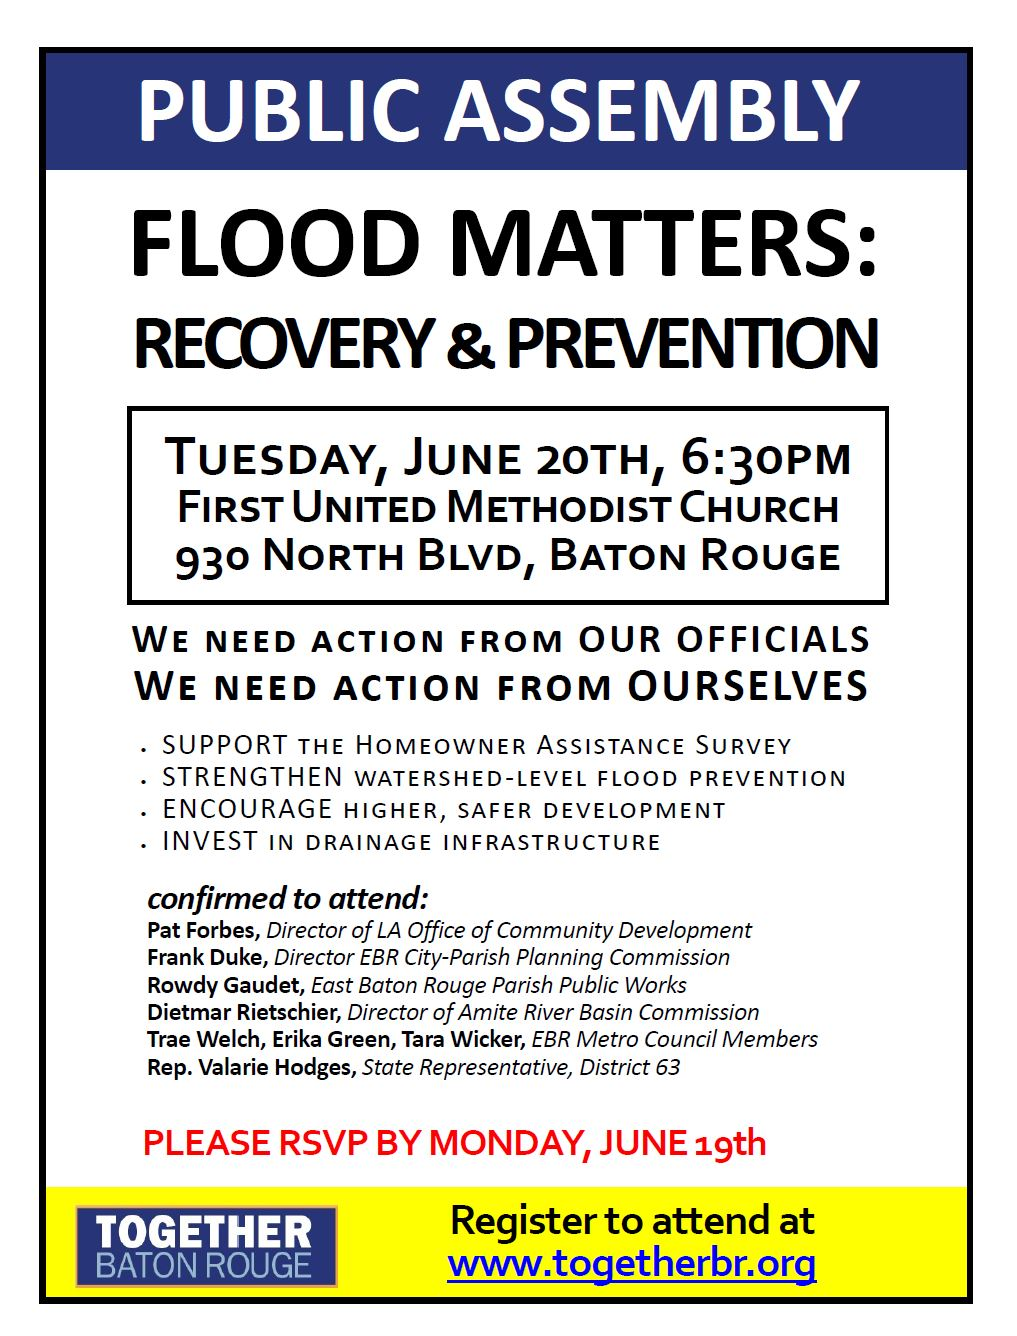 Leaflet_Flood_Matters_Assembly_6-20-17.JPG